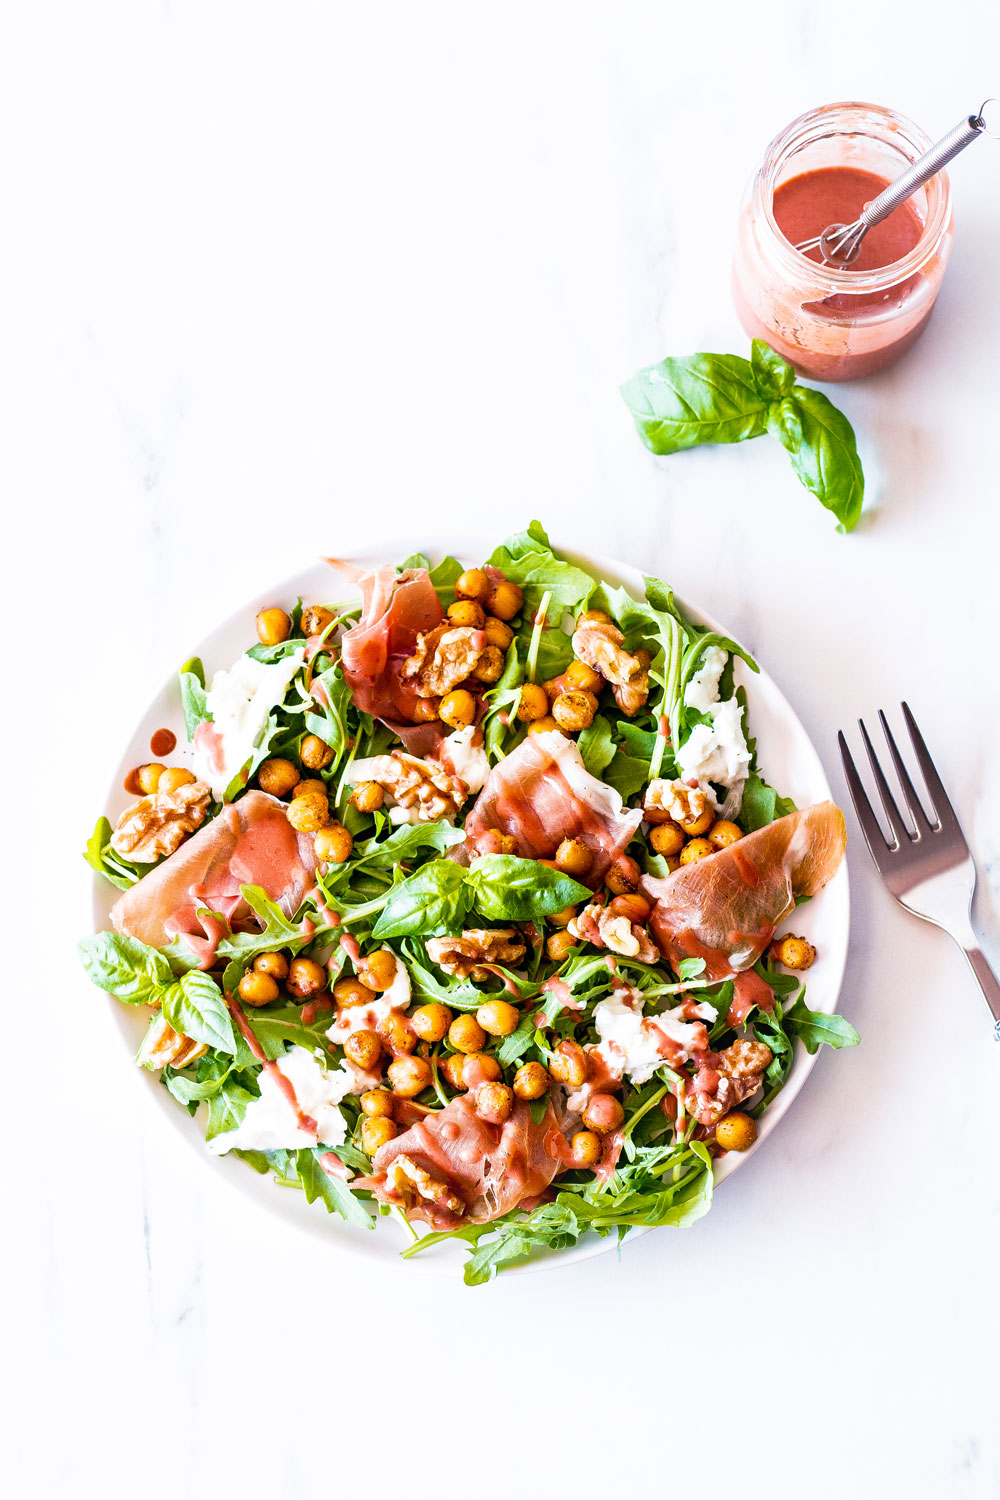 For a festive end-of-summer salad, try this prosciutto, mozzarella, and spicy chickpea salad with strawberry vinaigrette. This recipe is loaded with good quality Italian prosciutto and served with a fragrant sweet and sour salad dressing. https://www.spotebi.com/recipes/prosciutto-mozzarella-spicy-chickpea-salad-strawberry-vinaigrette/